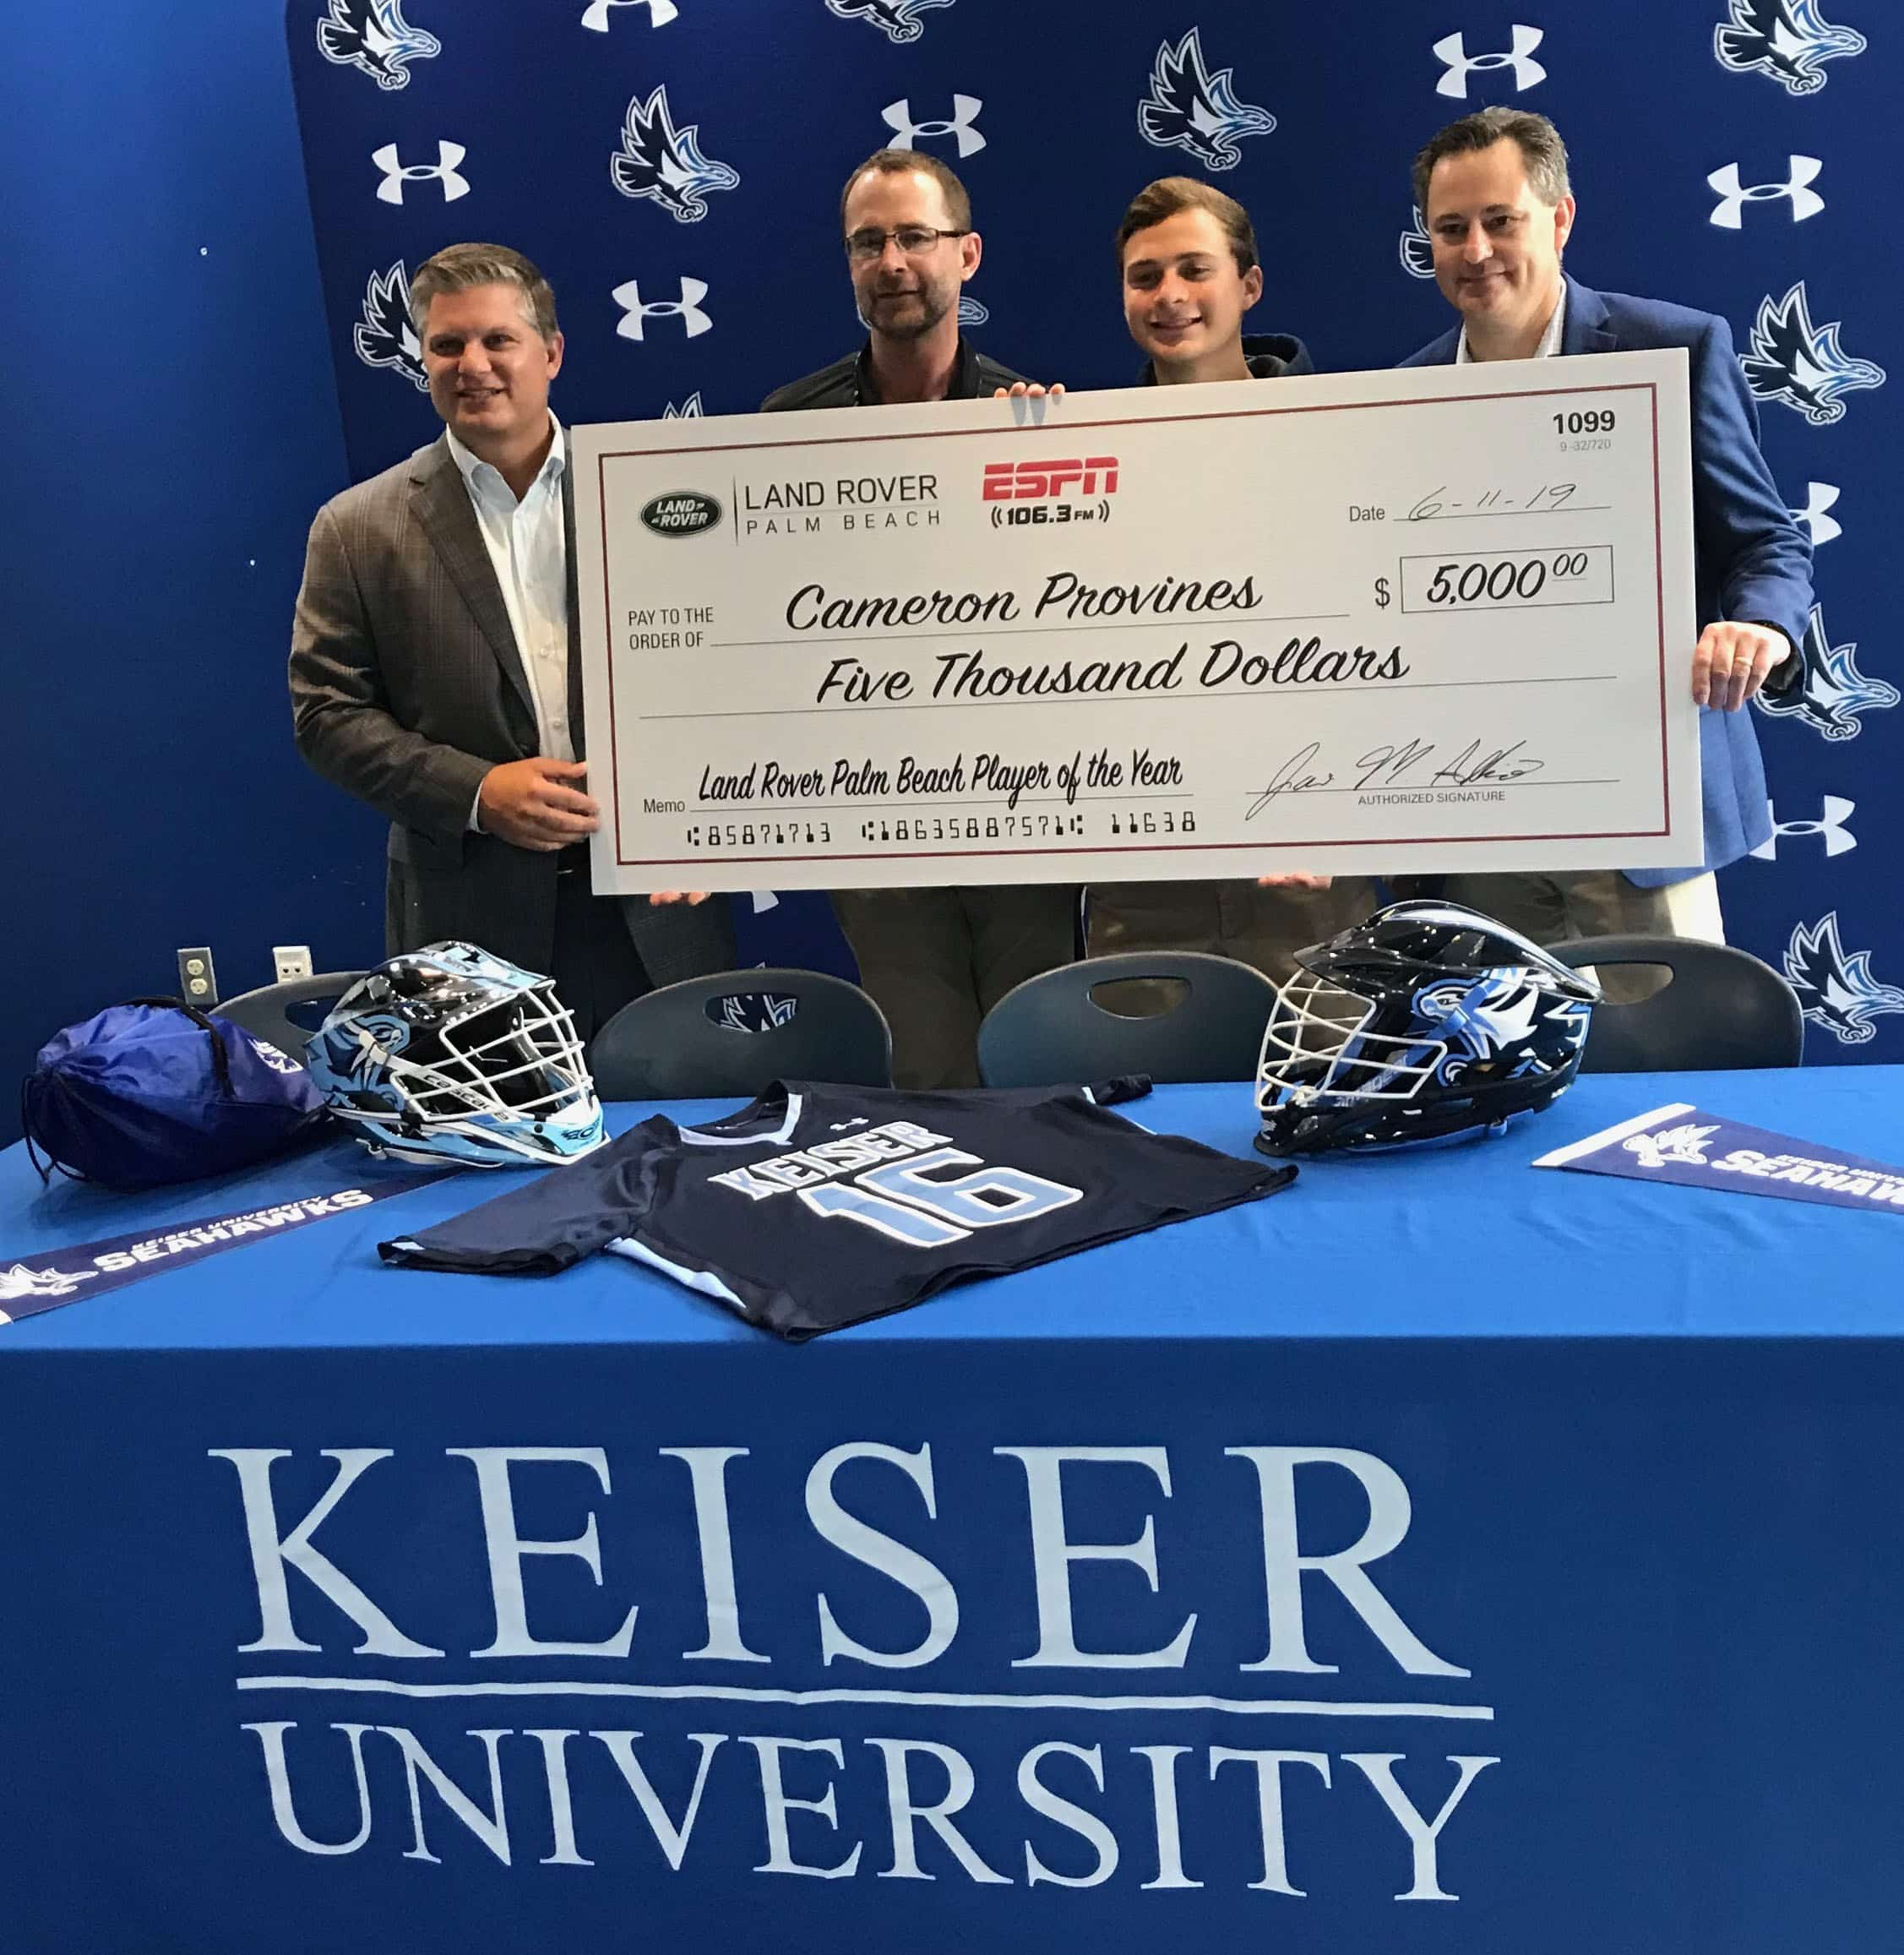 Treasure Coast Athlete Receives Surprise Land Rover Scholarship at Keiser University